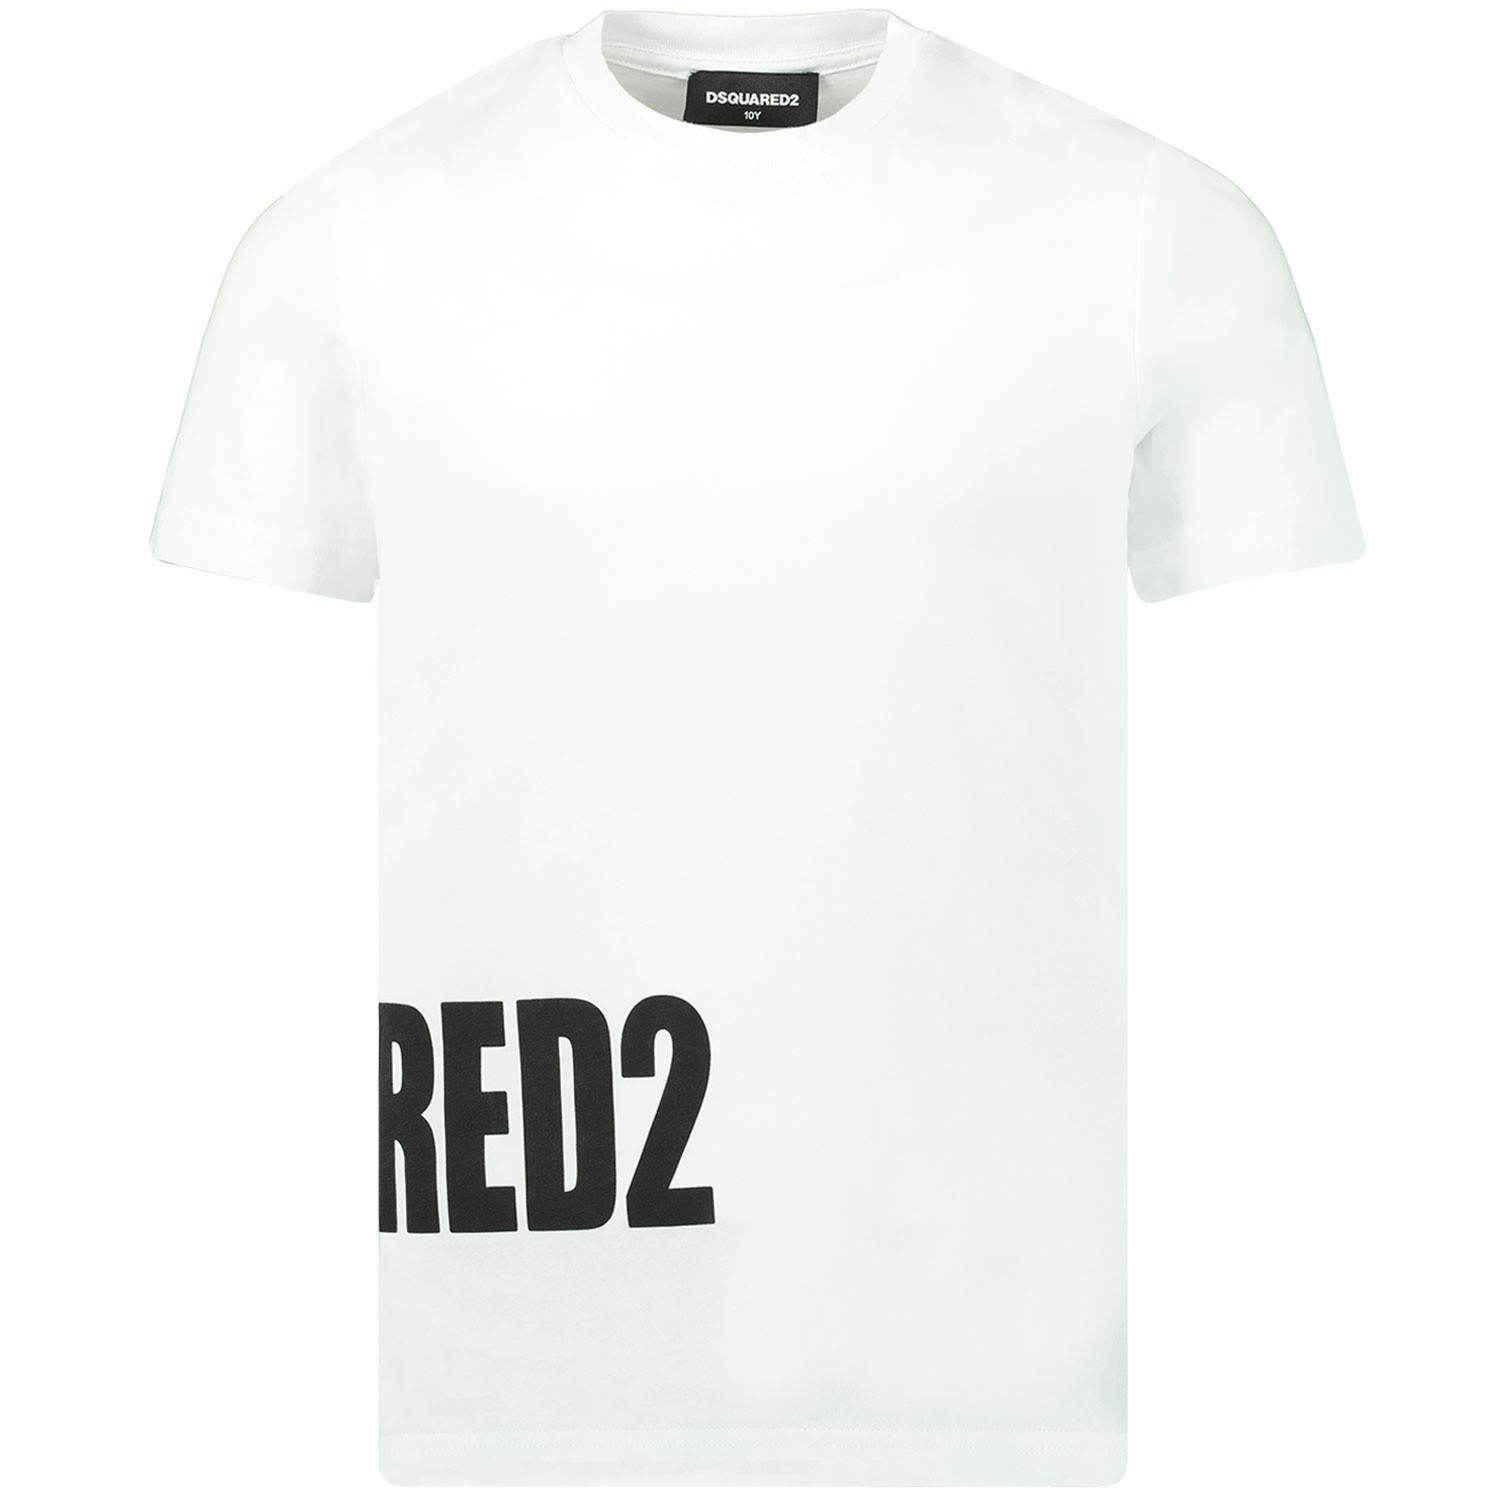 Afbeelding van Dsquared2 DQ03NY kinder t-shirt wit